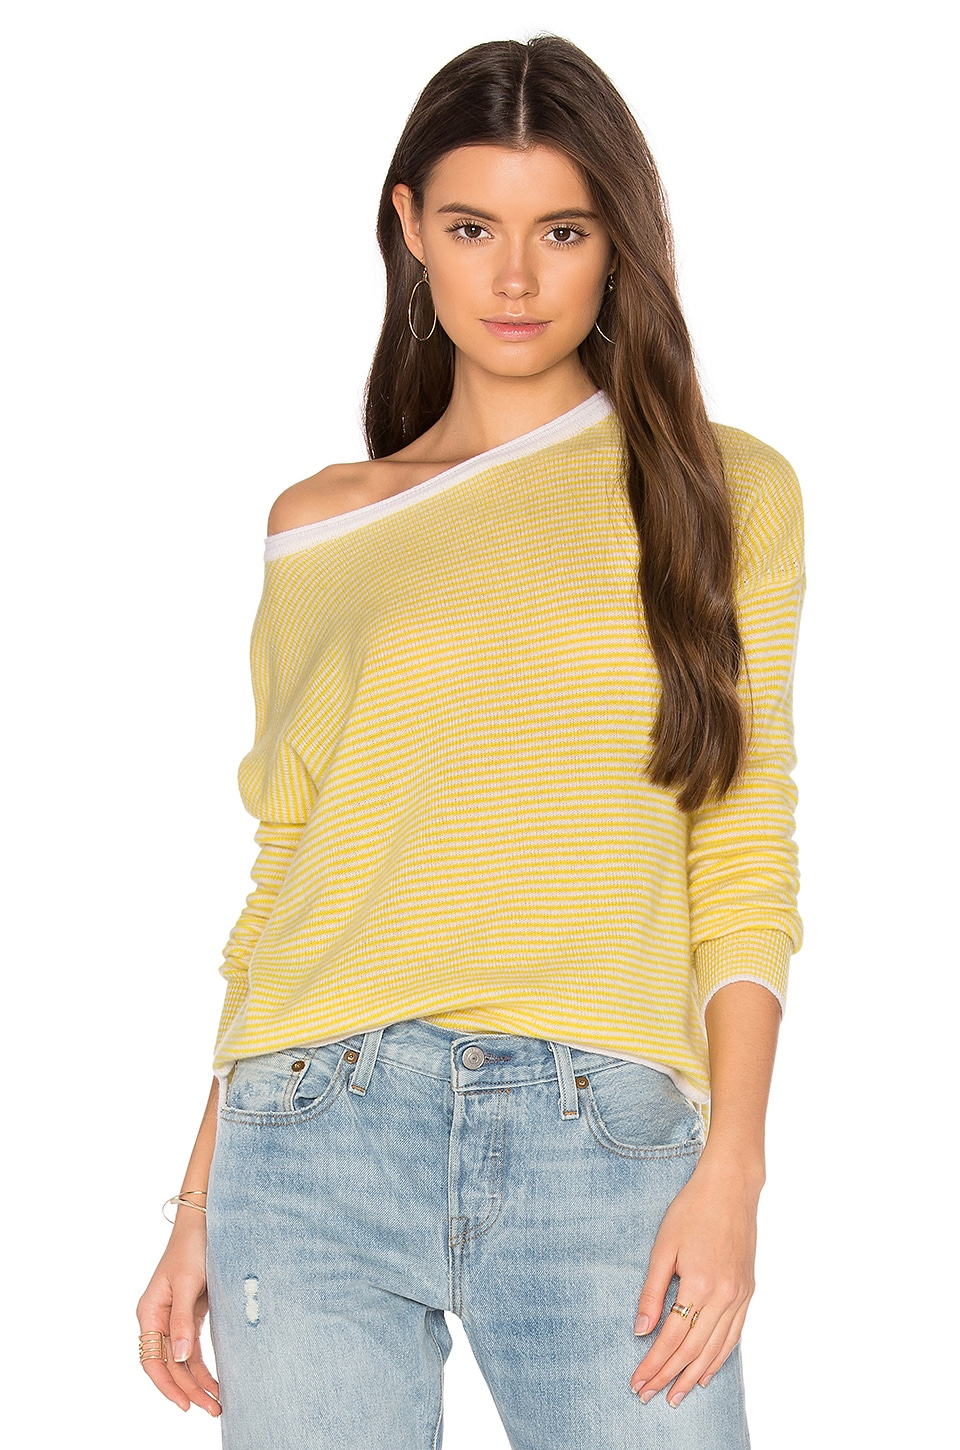 Clarisse Stripe Cashmere Sweater by CHARLI